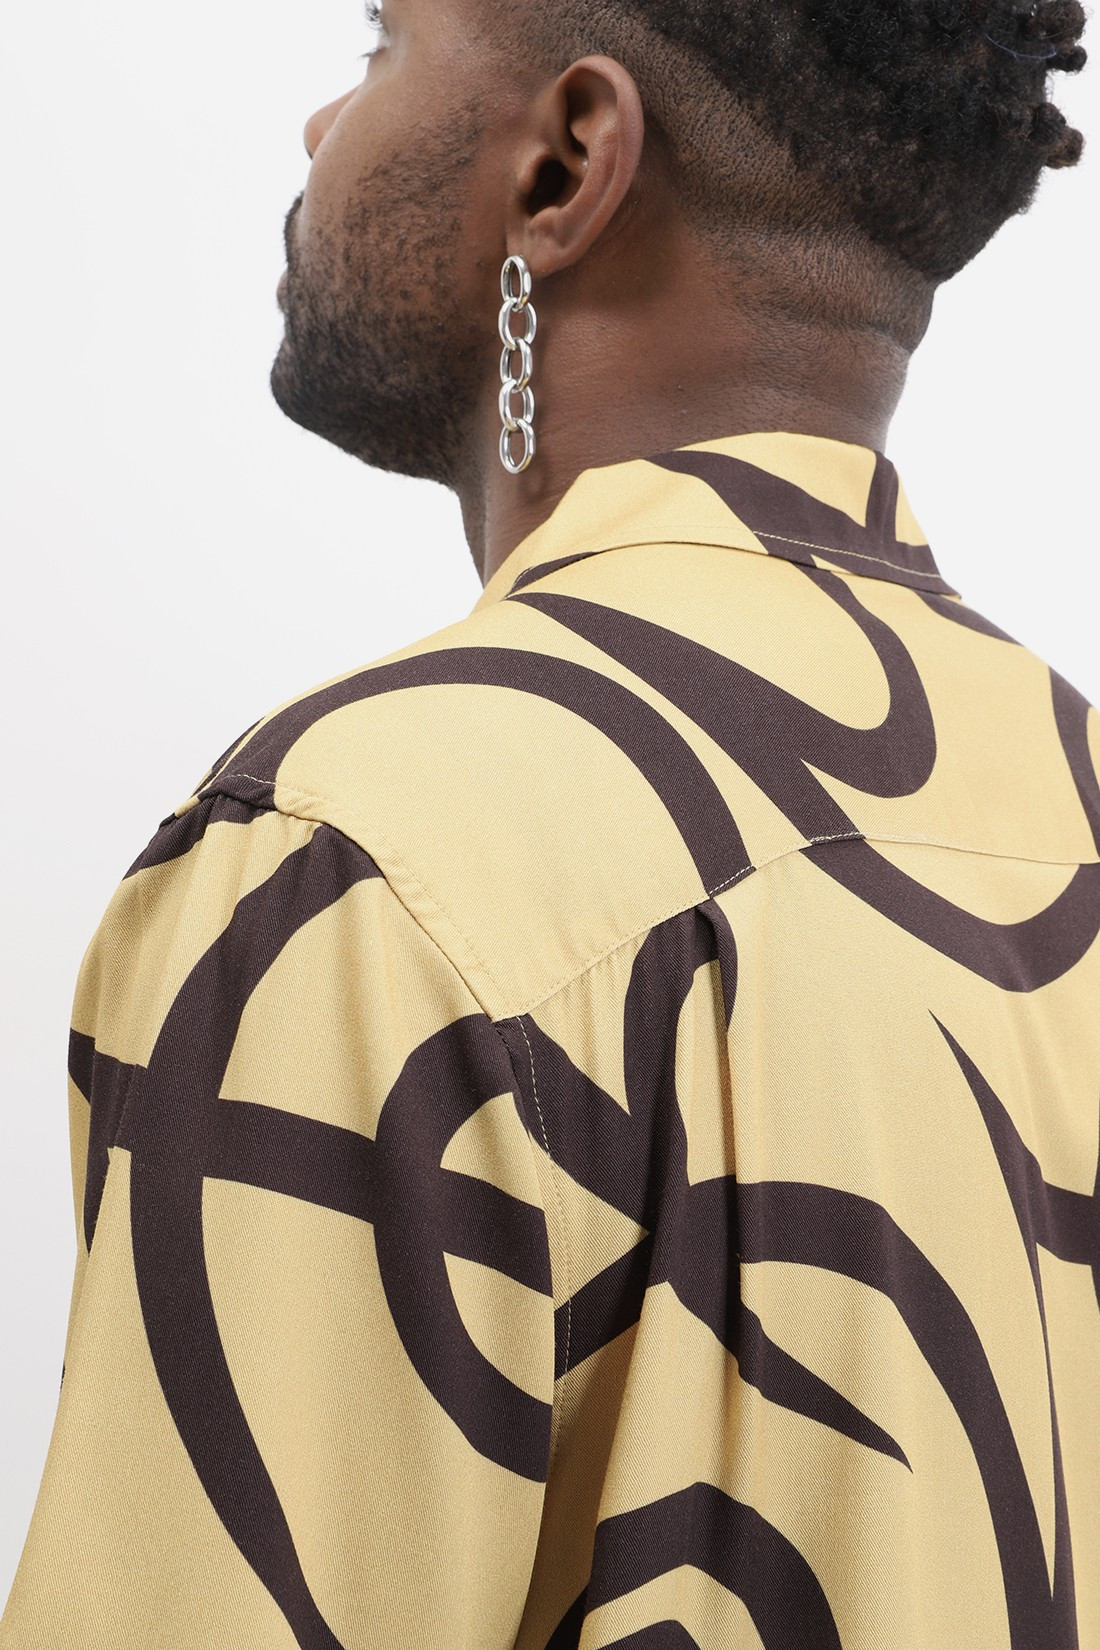 STUSSY / Tribal pattern shirt Mustard